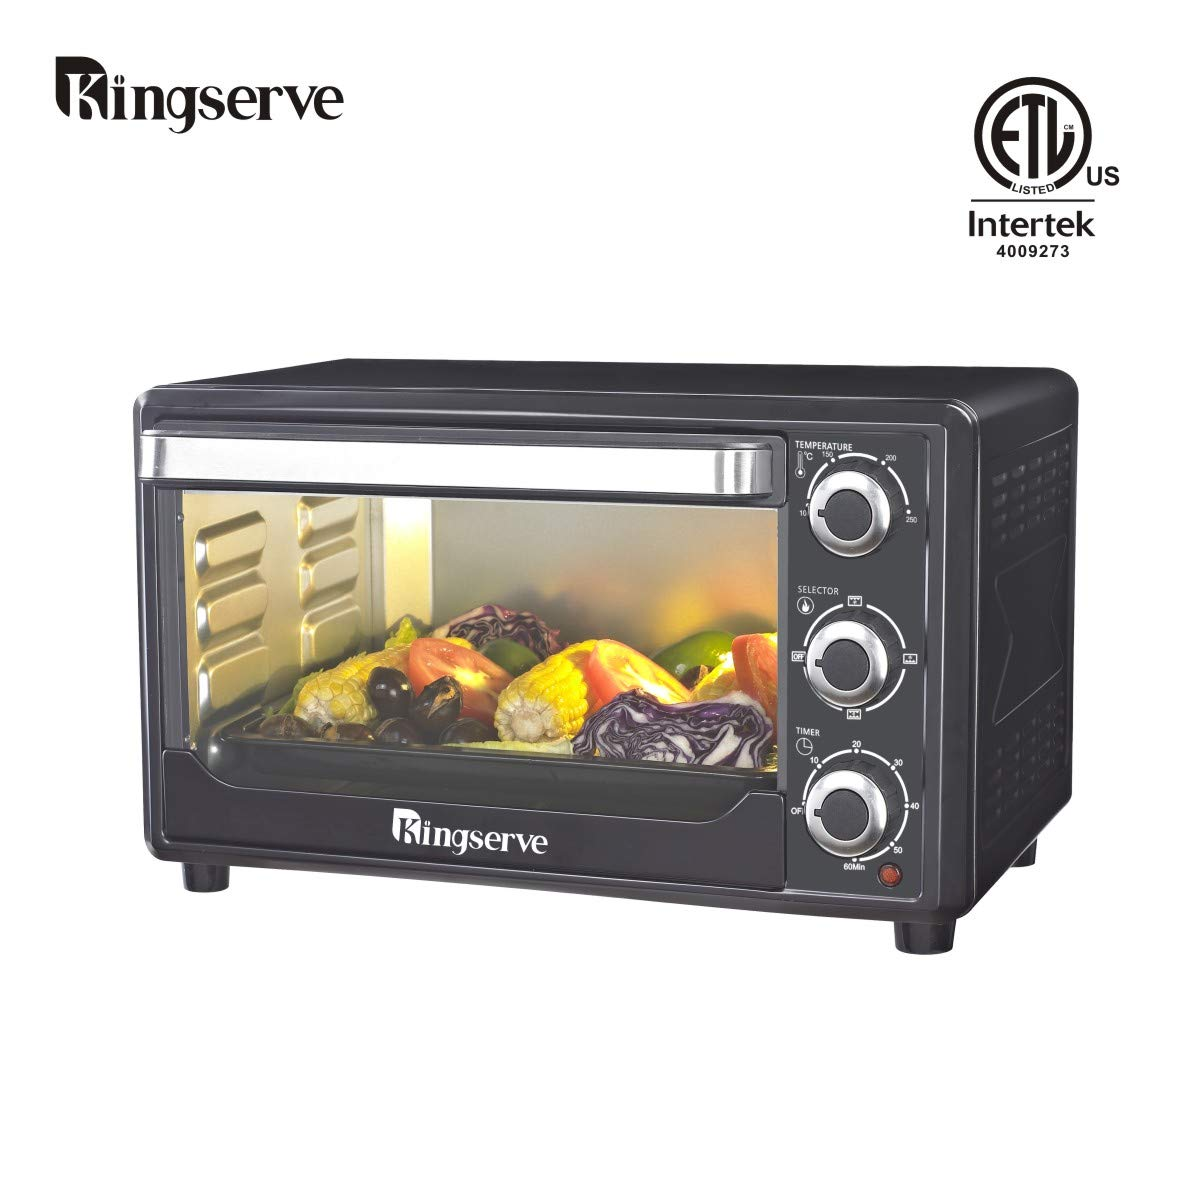 KingServe Convection Toaster Oven,Modern Best Toaster Convection Countertop Oven Bake Pizza Oven,Stainless Steel Toaster Bake Broiler Kitchen Counter Oven(Black)